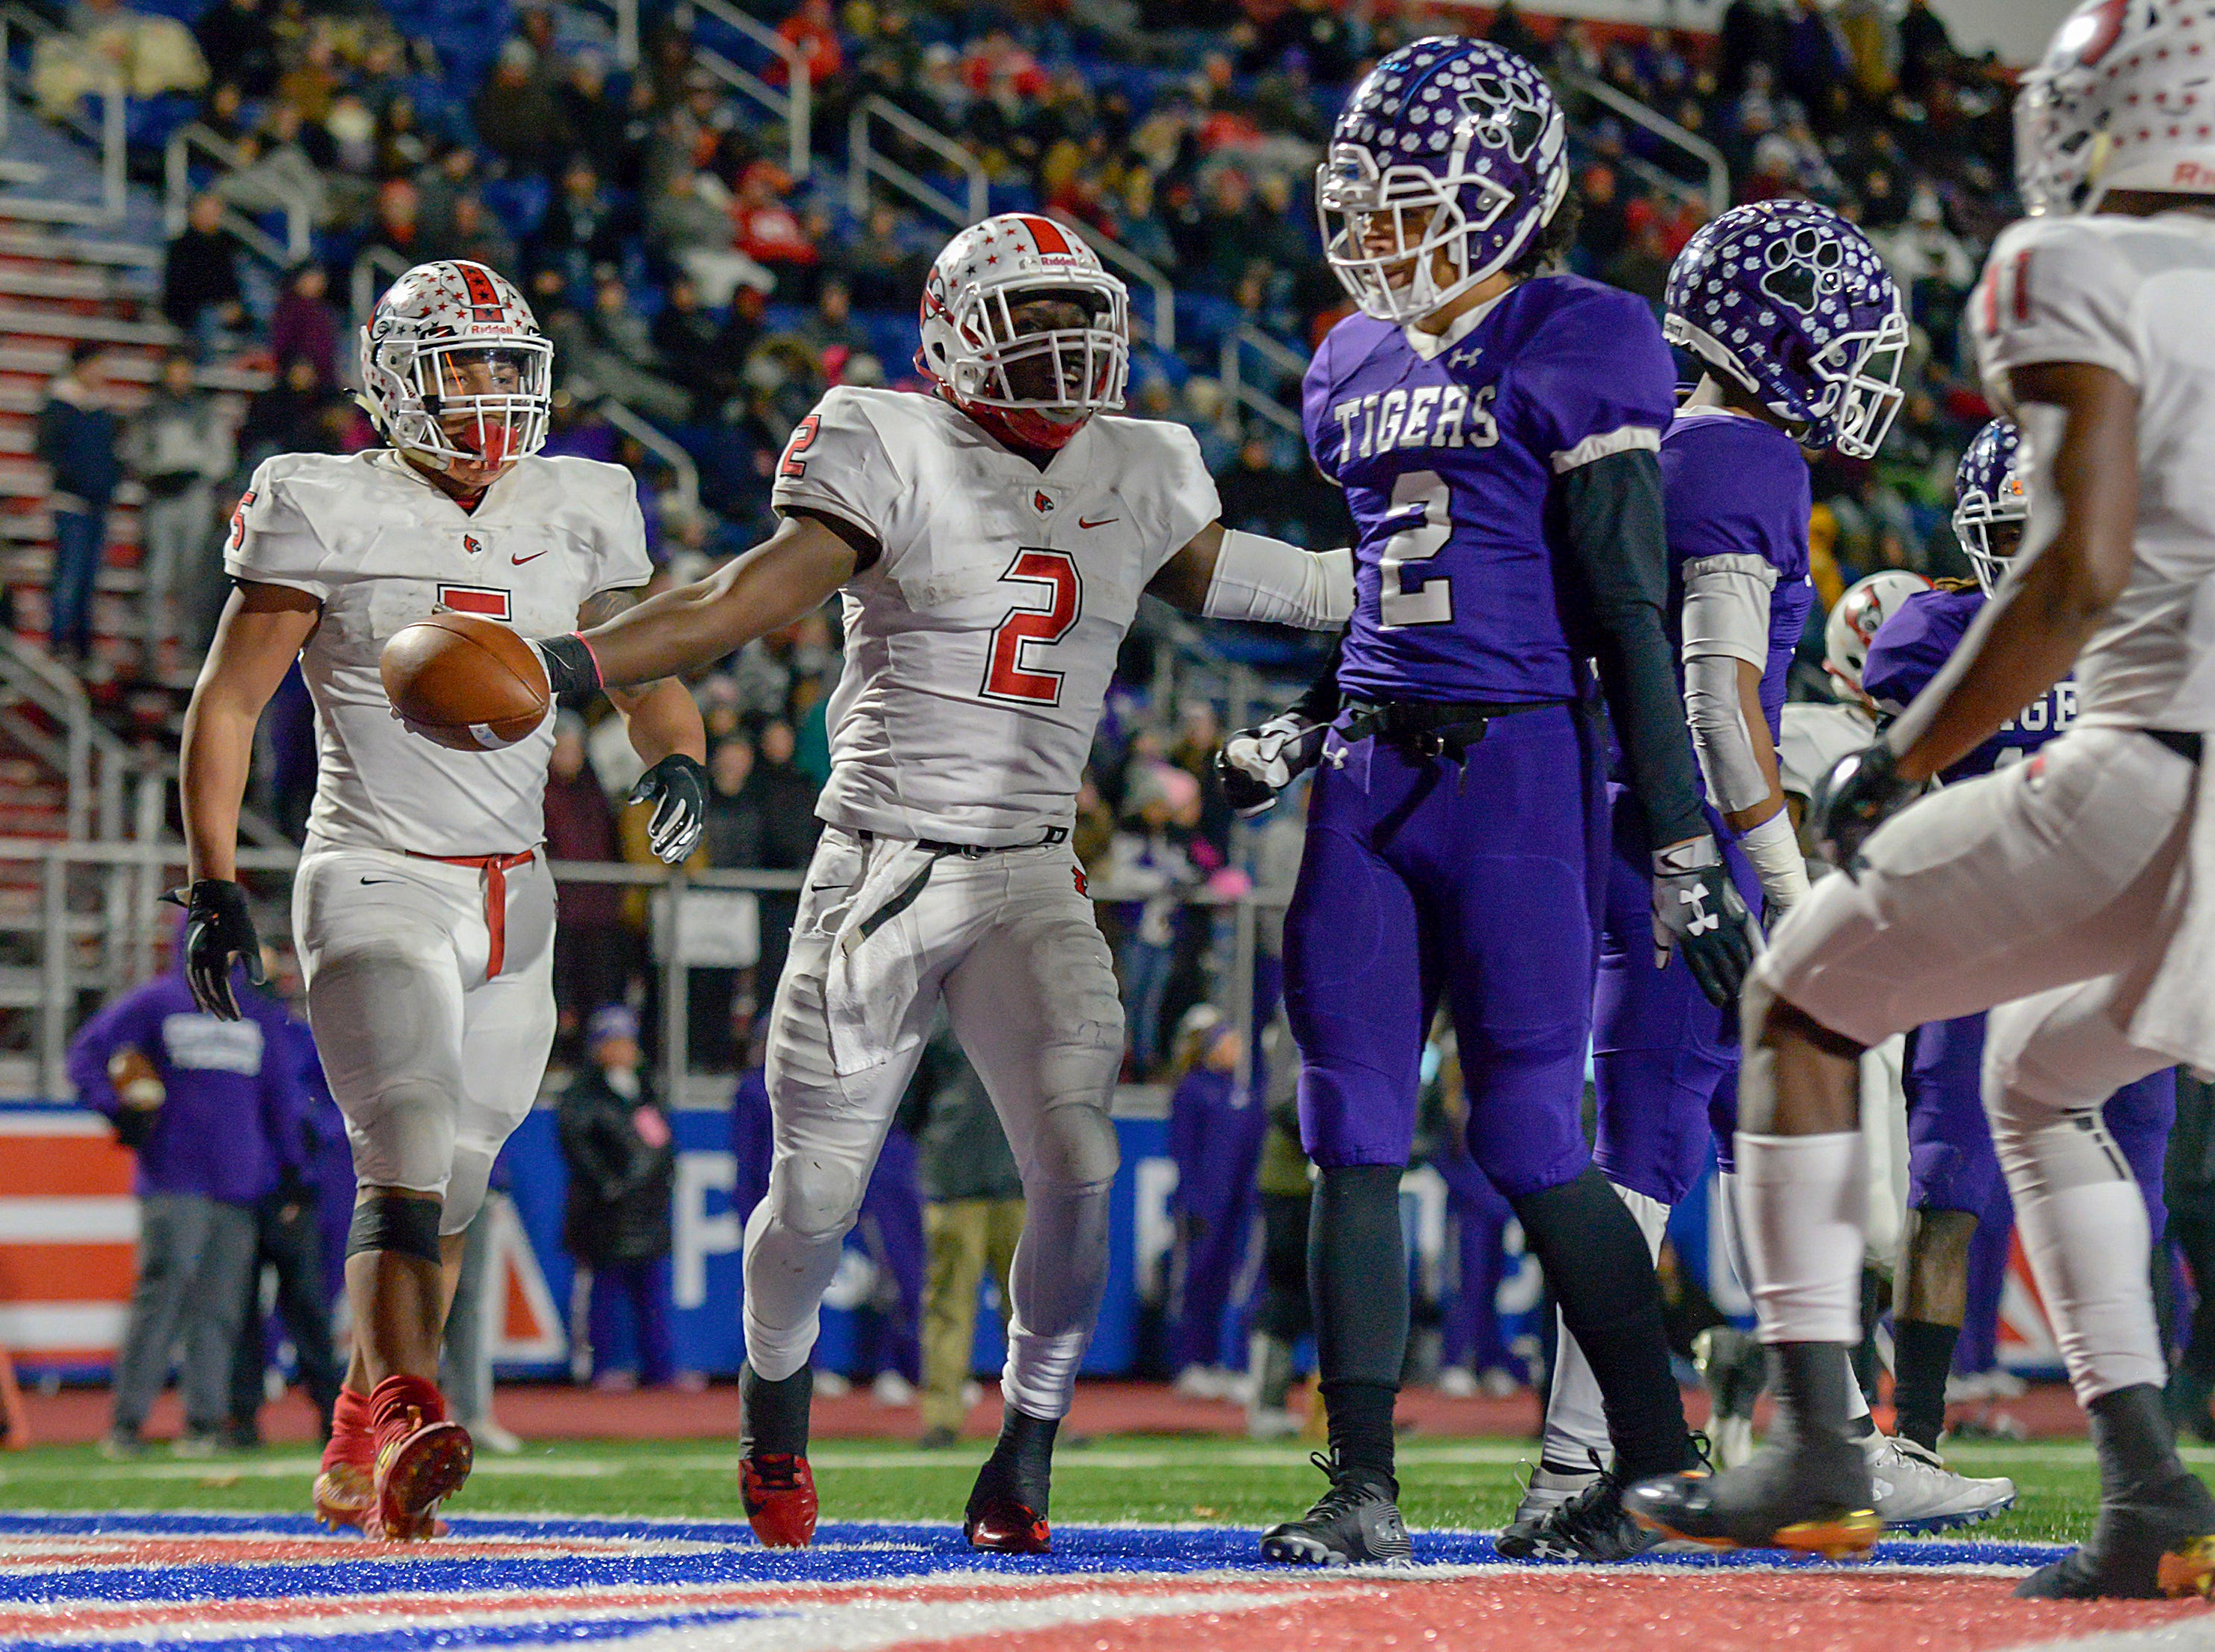 Colerain quarterback Deante Smith-Moore (2) celebrates after scoring a touchdown against Pickerington Central in the OHSAA Region IV D1 State Semi-Final at Piqua High School, Friday Nov. 23, 2018